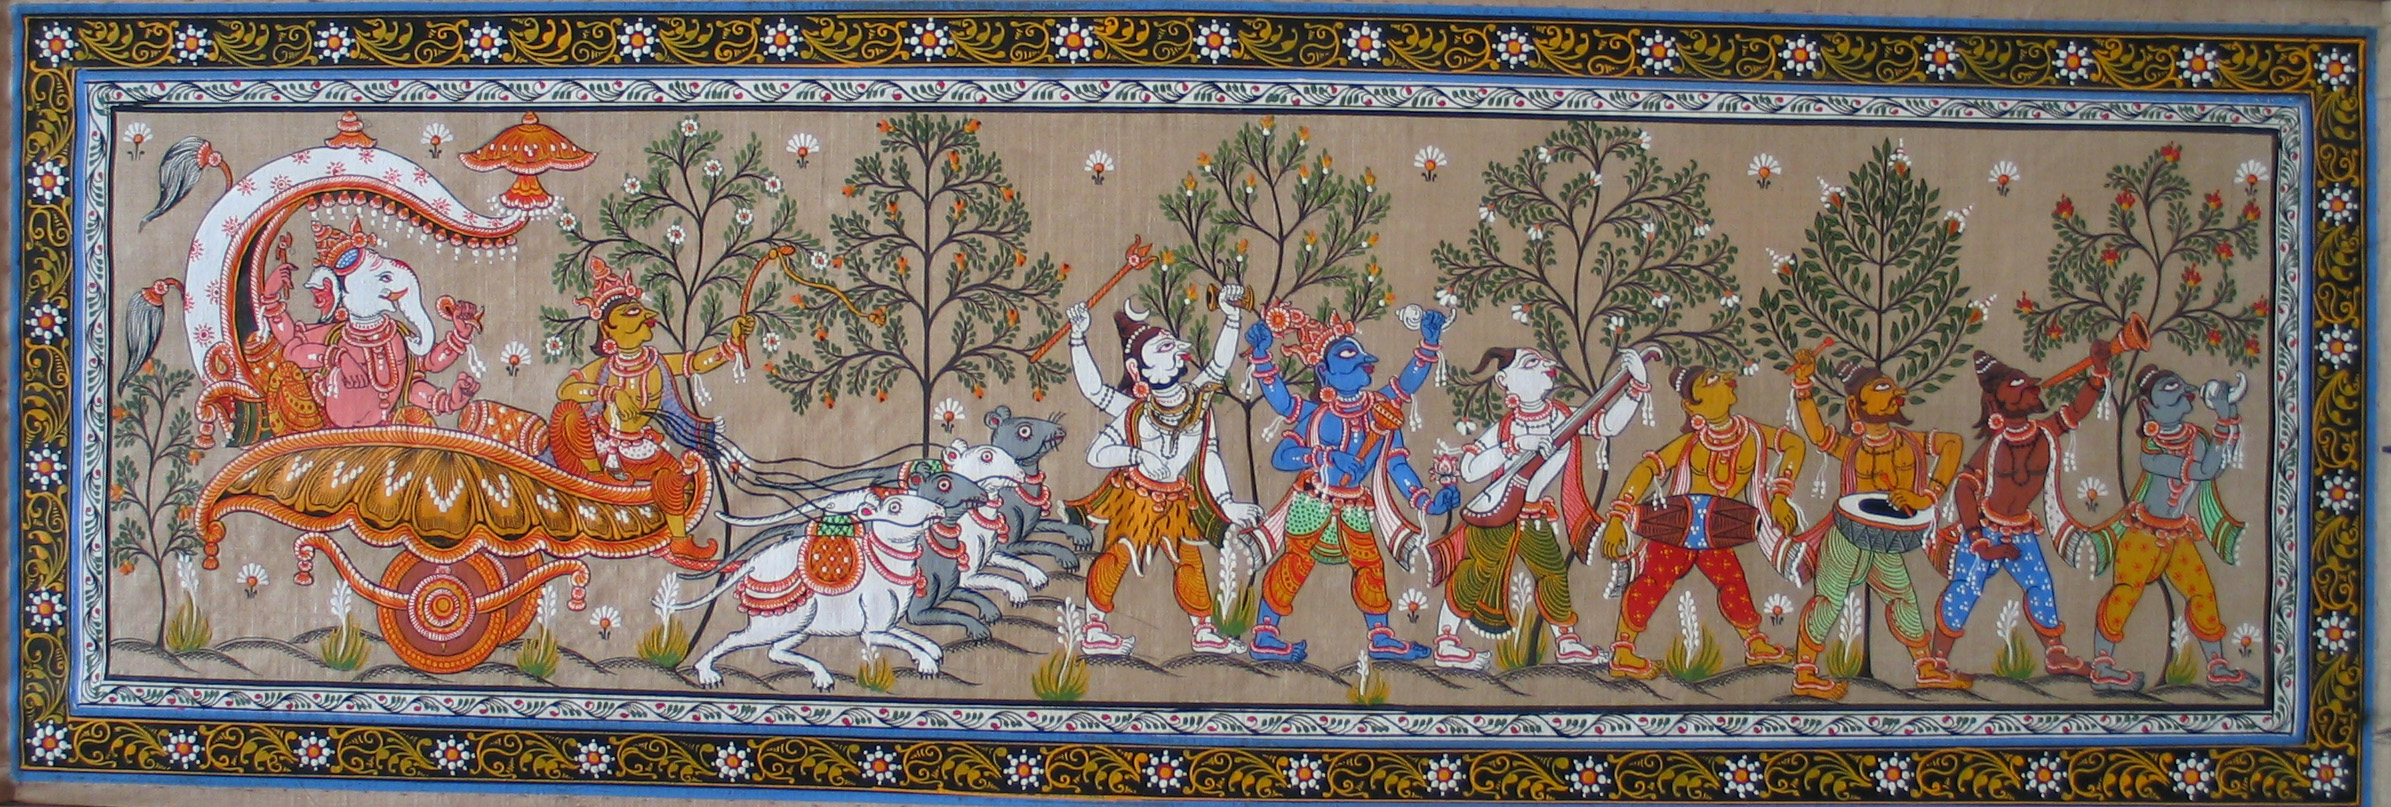 The Traditional Indian Painting Styles You Should Know